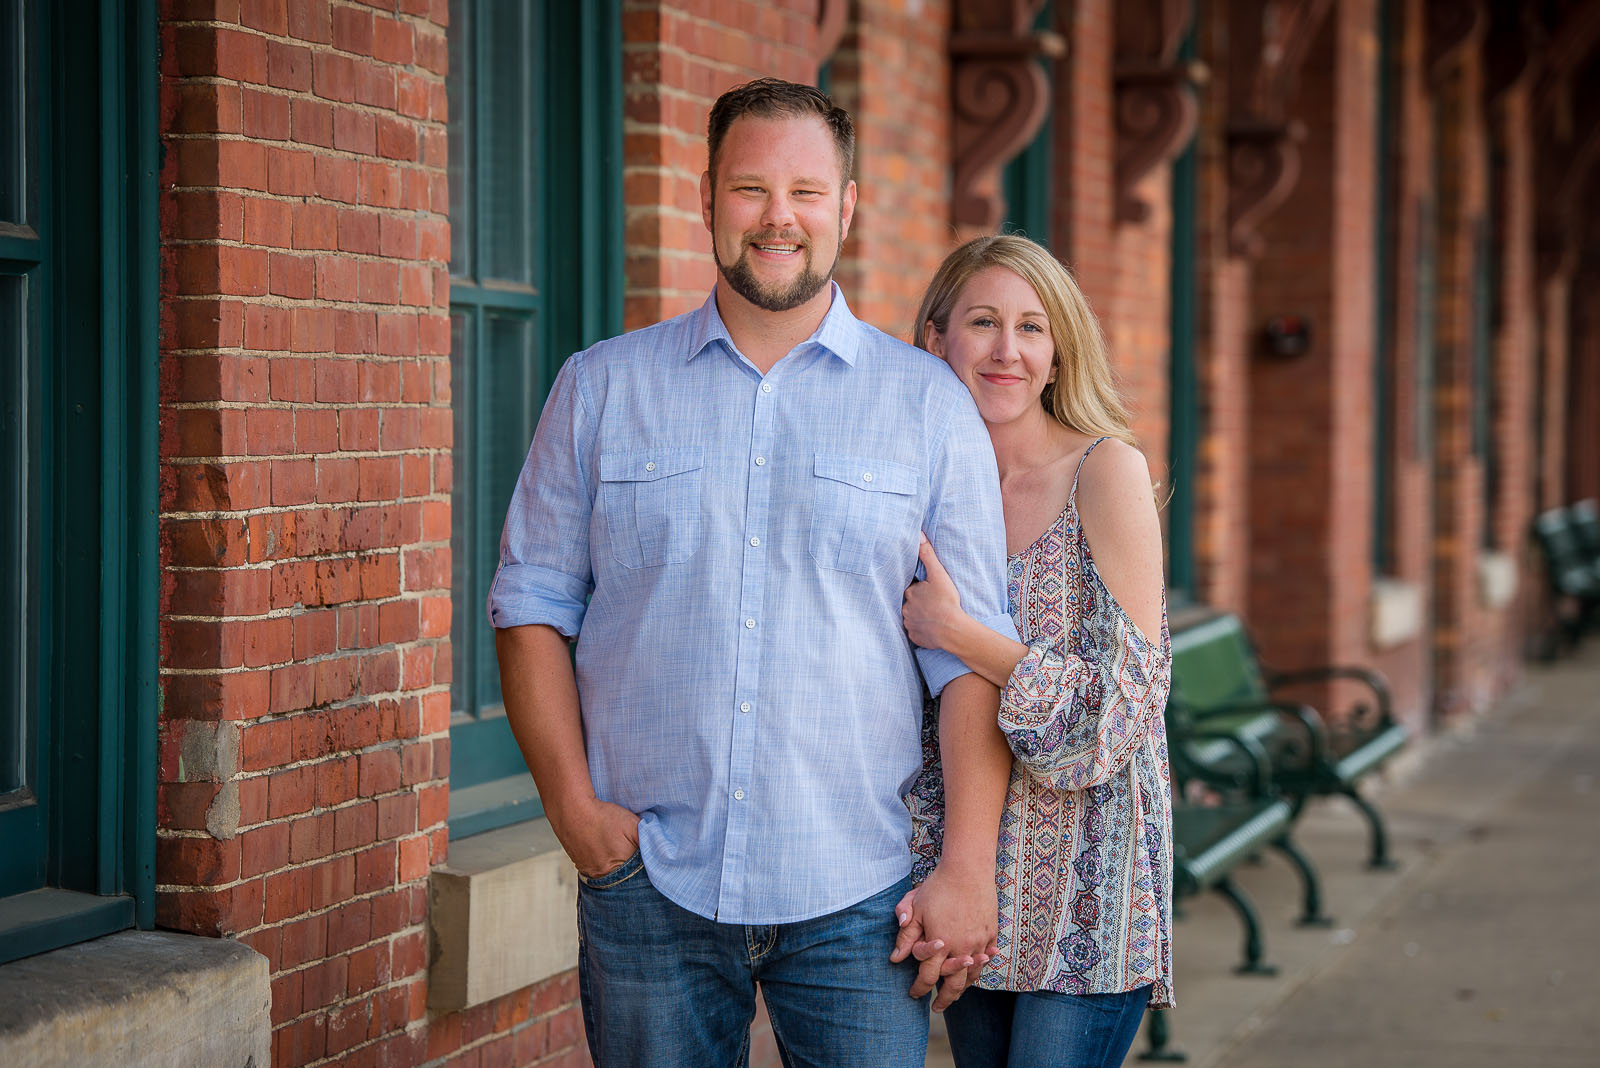 Eric_and_Christy_Photography_Blog_Kelly_Matt_Engagement-1